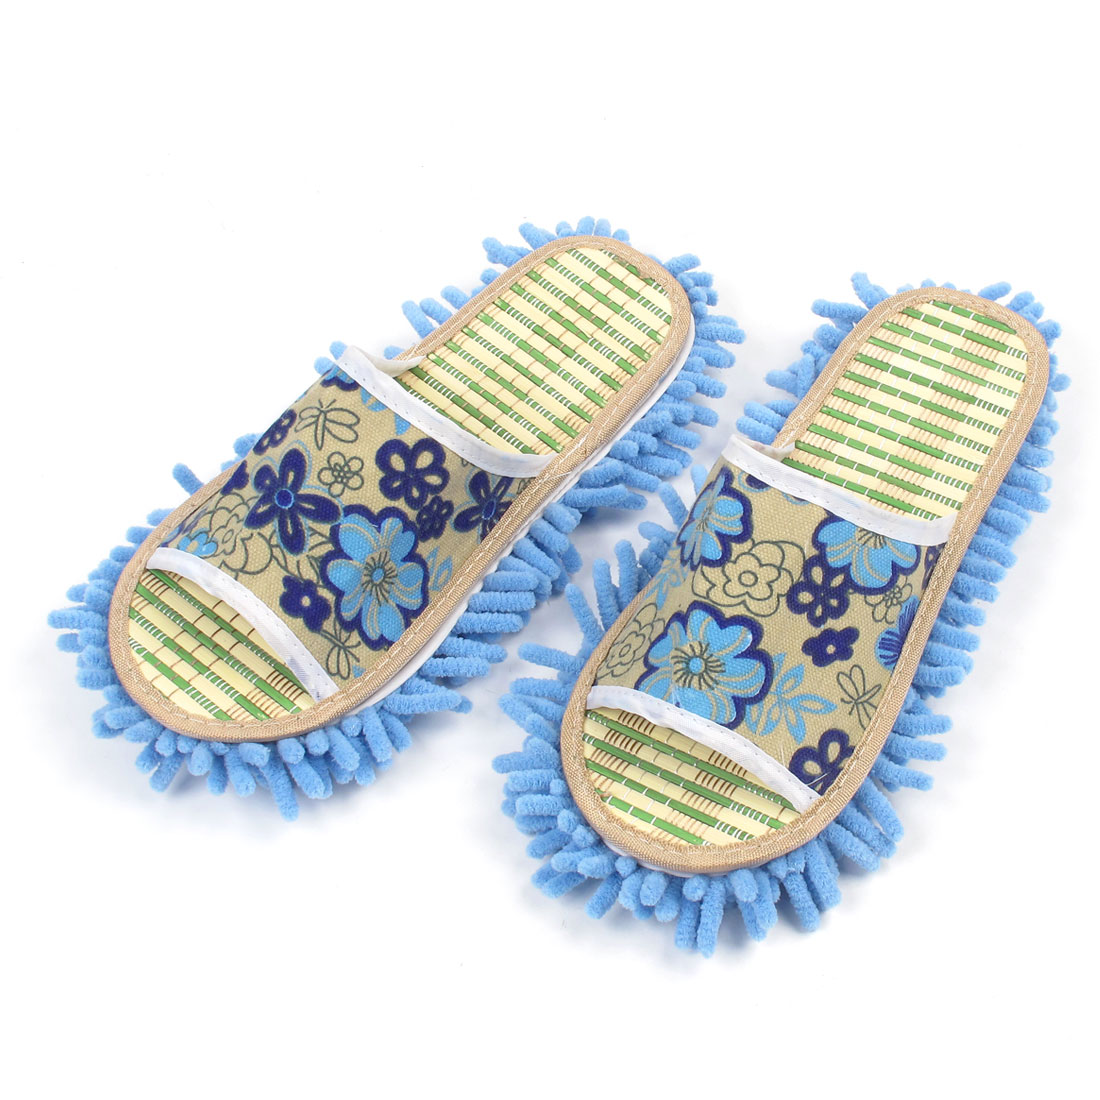 Pair Light Blue Open Toe Backless Mop Slippers 42 for Lady